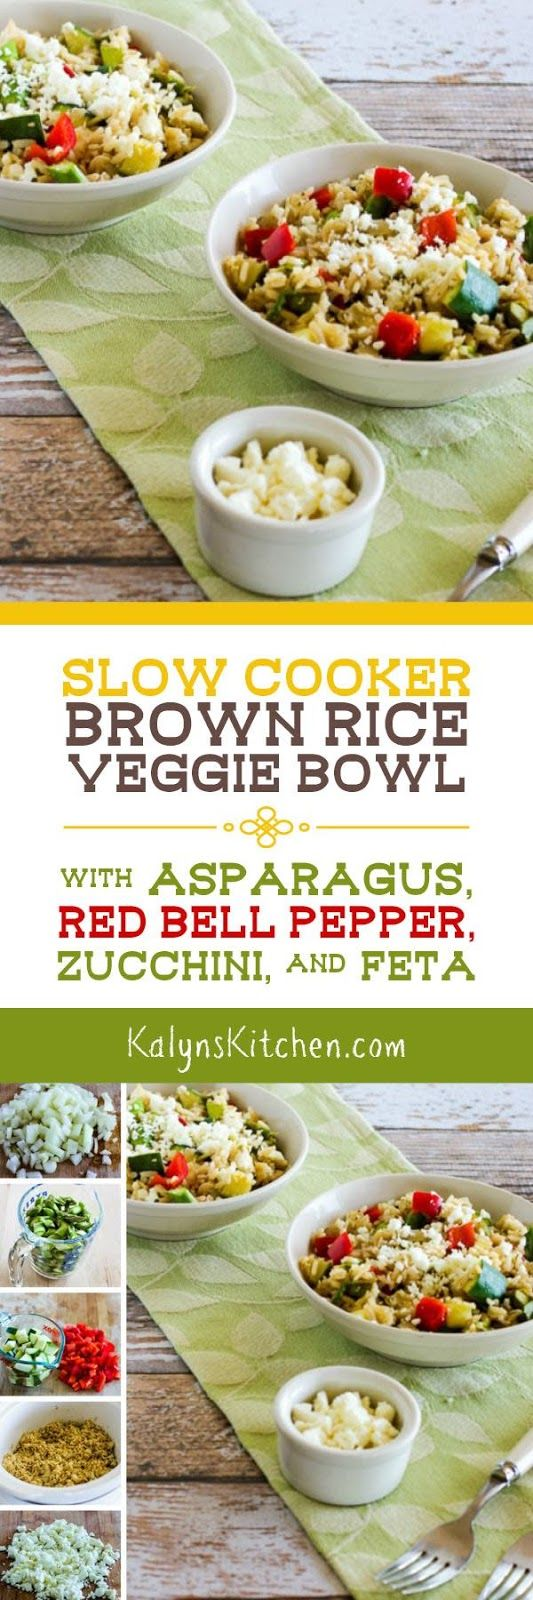 Brown Rice And Veggies Cook Together In The Slow Cooker For This Tasty Slow Cooker  Brown